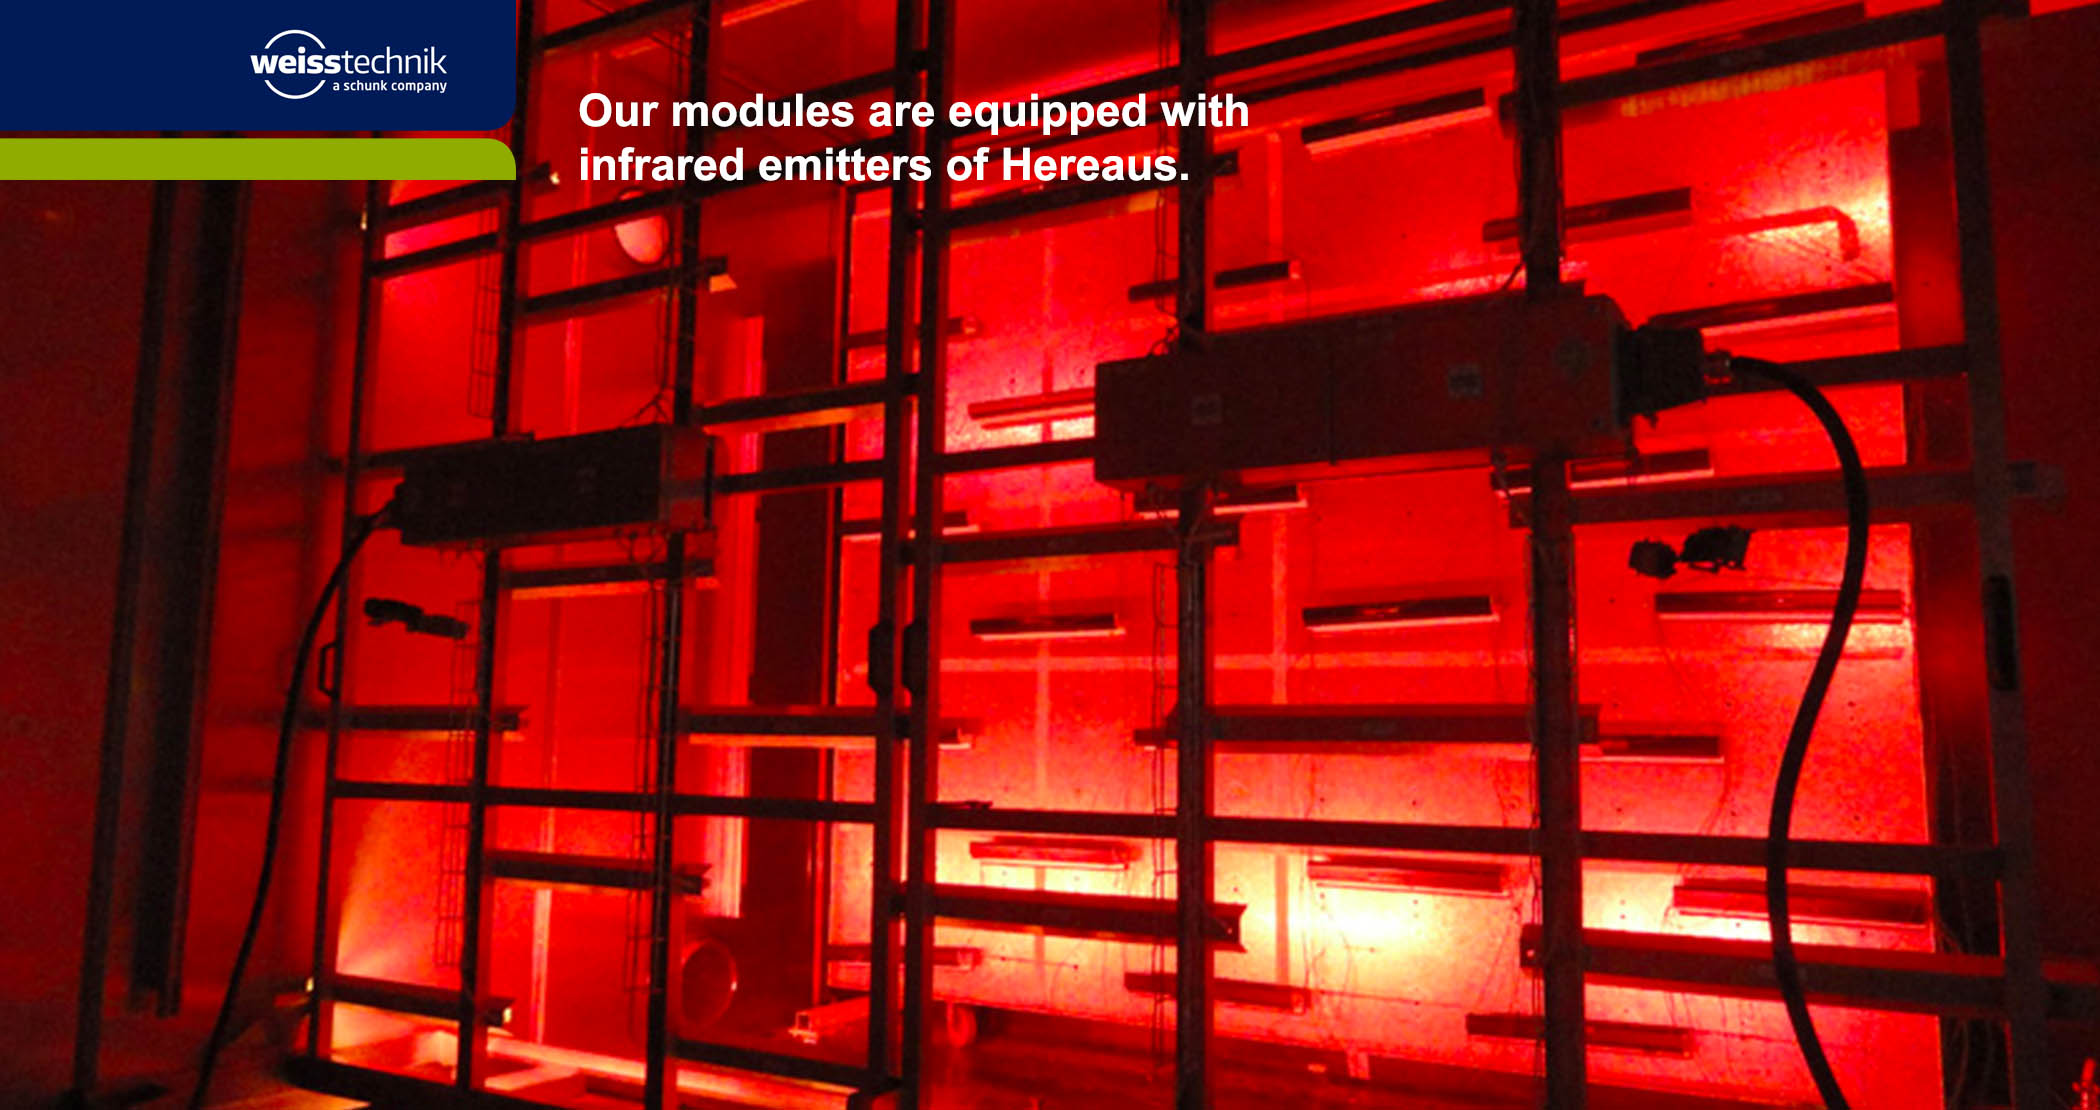 Infrared modules